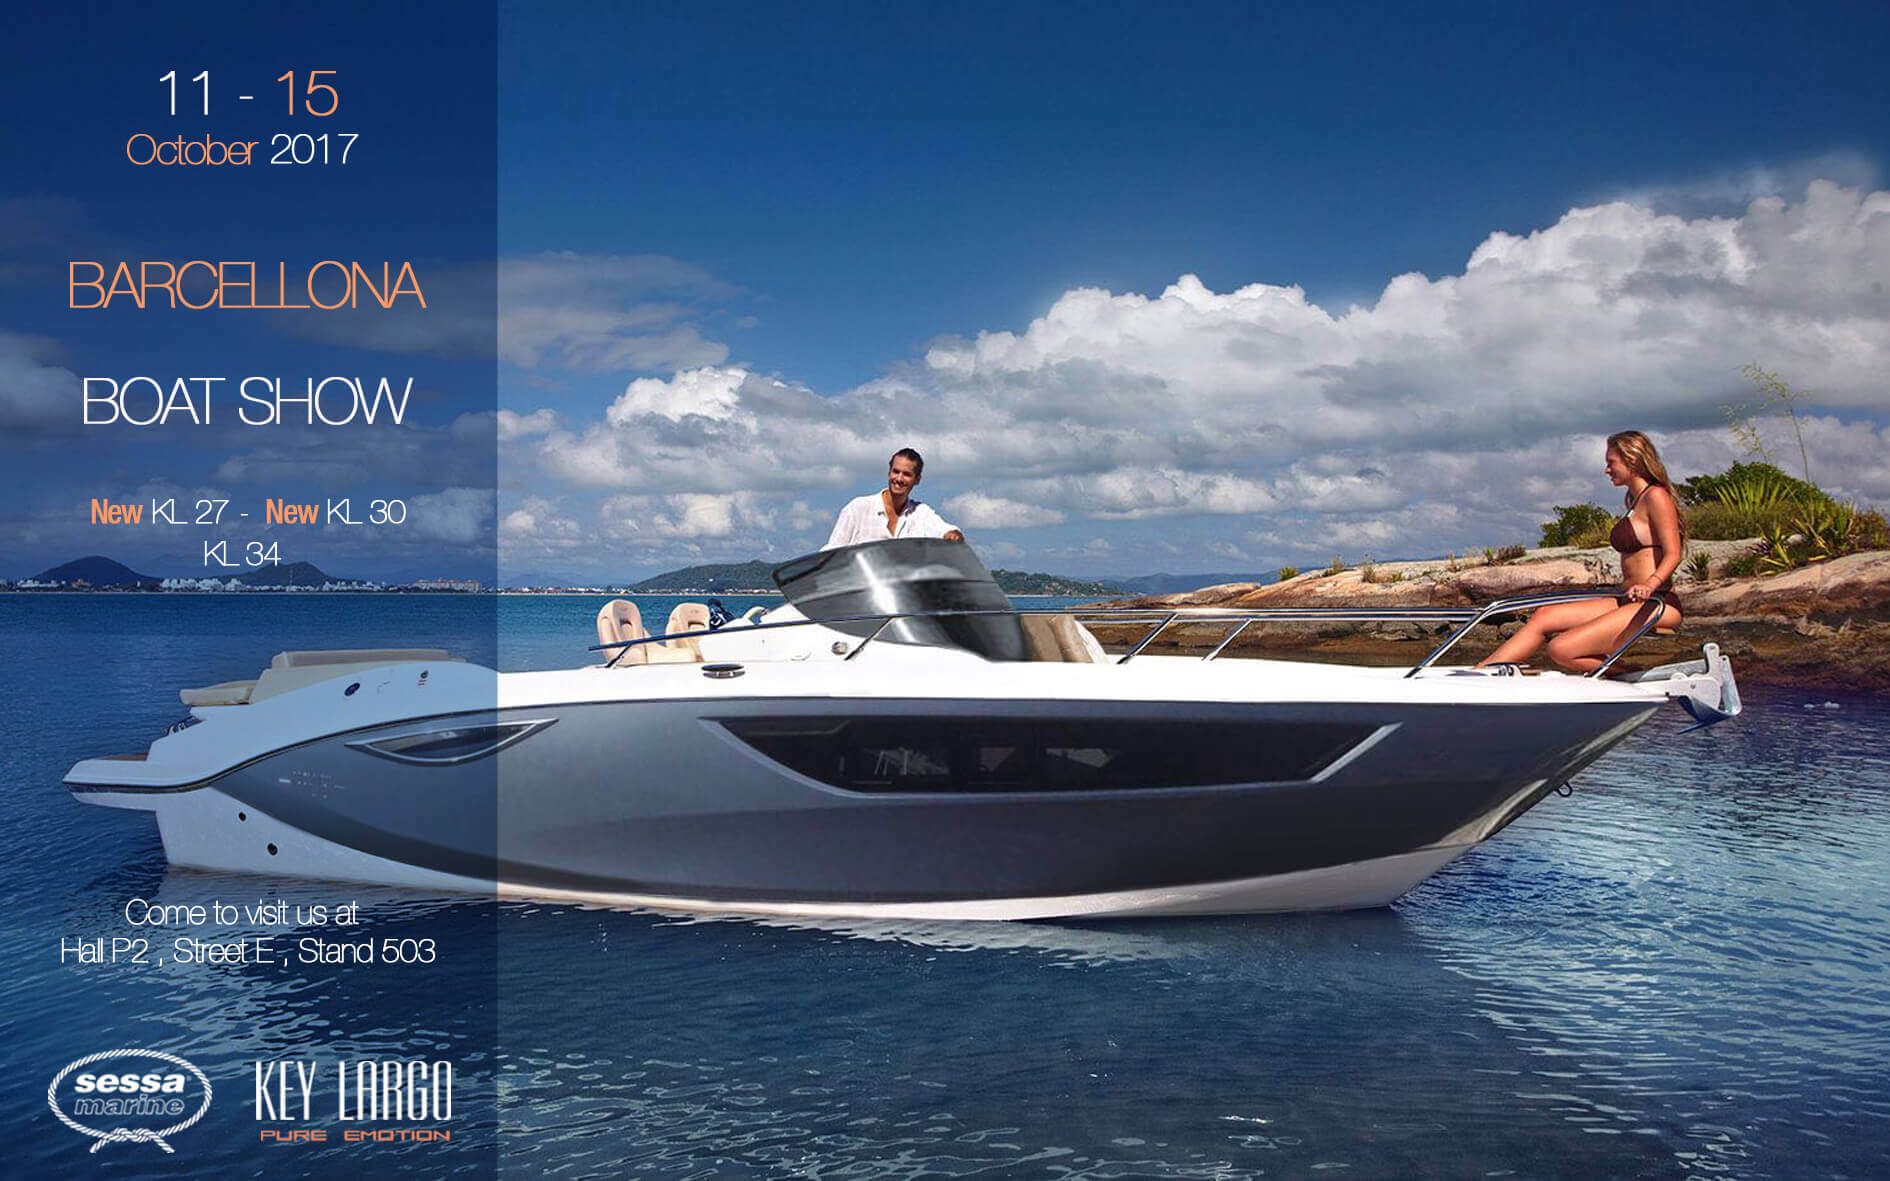 BARCELLONA BOAT SHOW